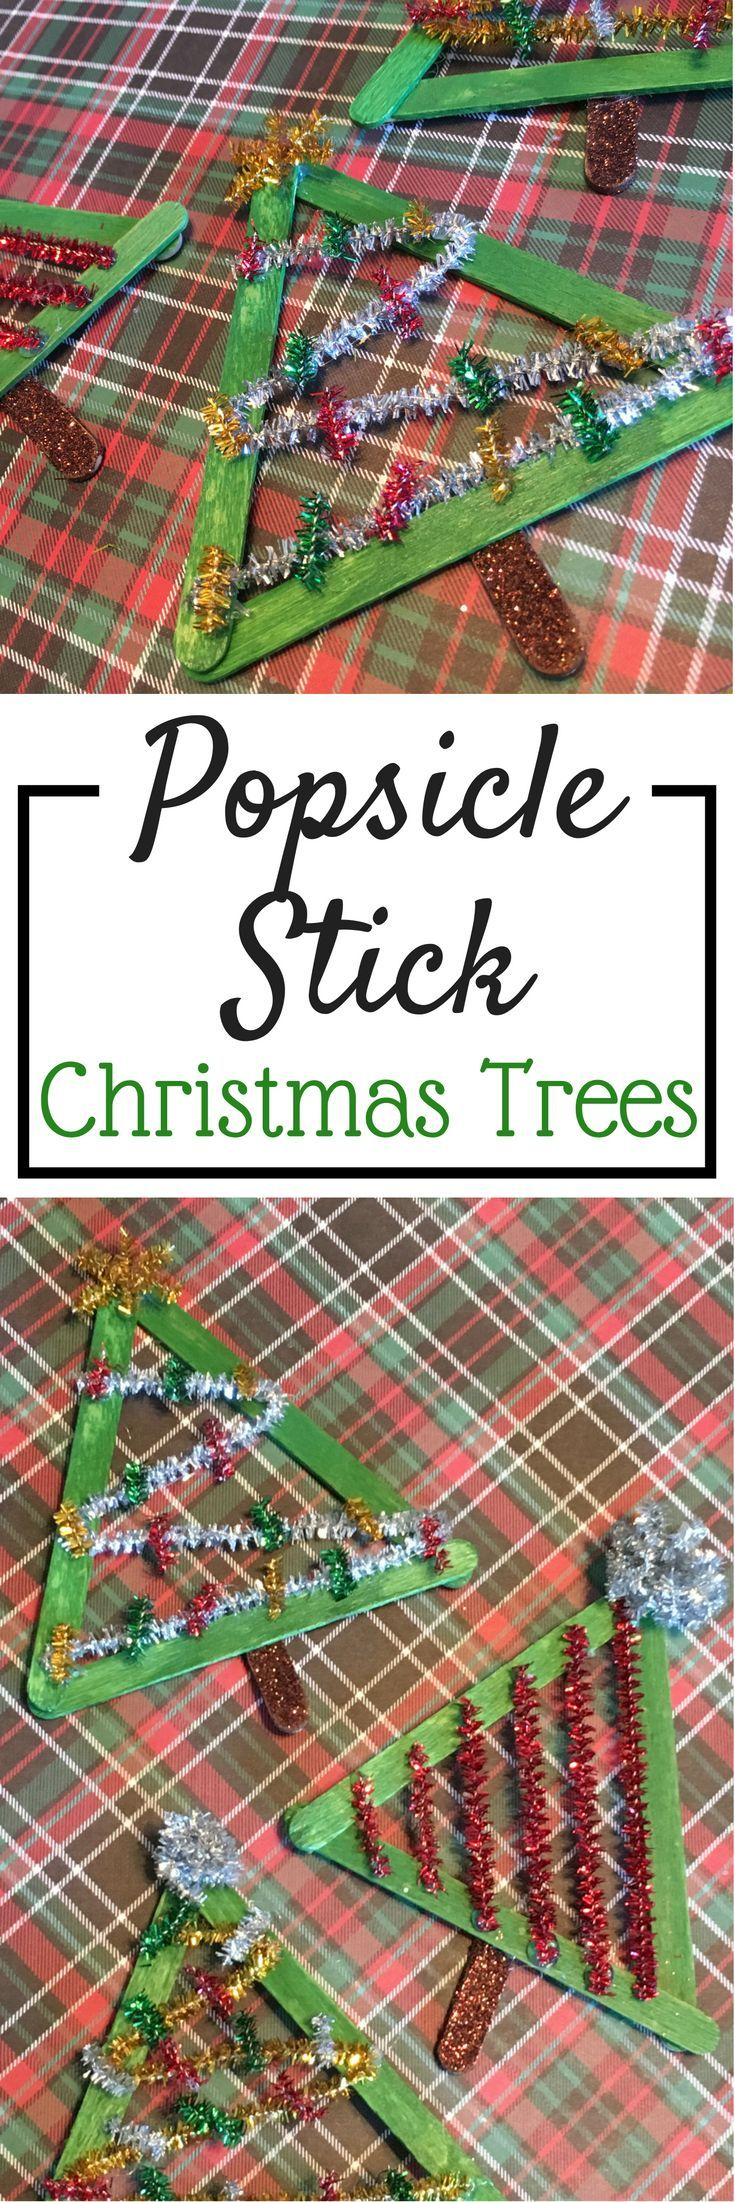 Popsicle Stick Christmas Trees! Great craft for kids this Holiday season. Super easy too! Great for ll ages